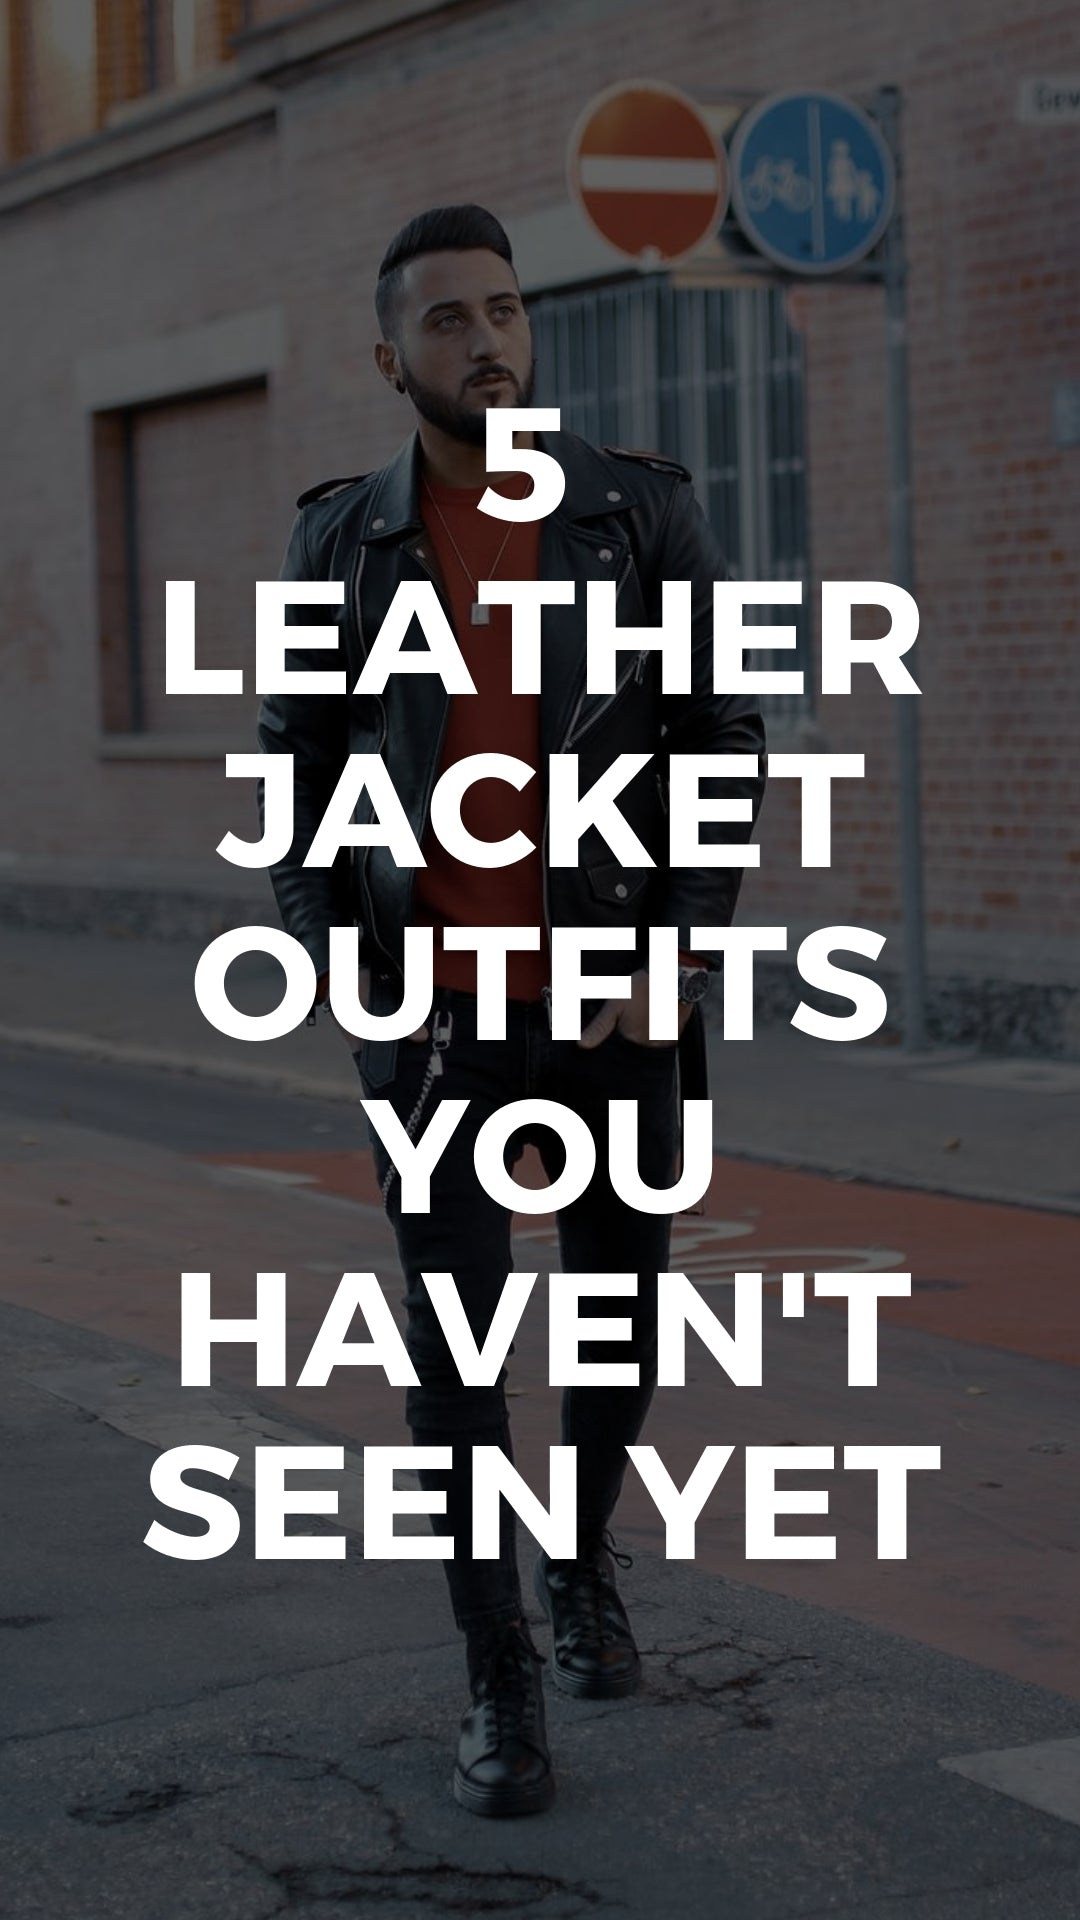 5 Leather Jacket Outfits You Haven't Seen Yet #leather #jacket #outfits #mens #fashion